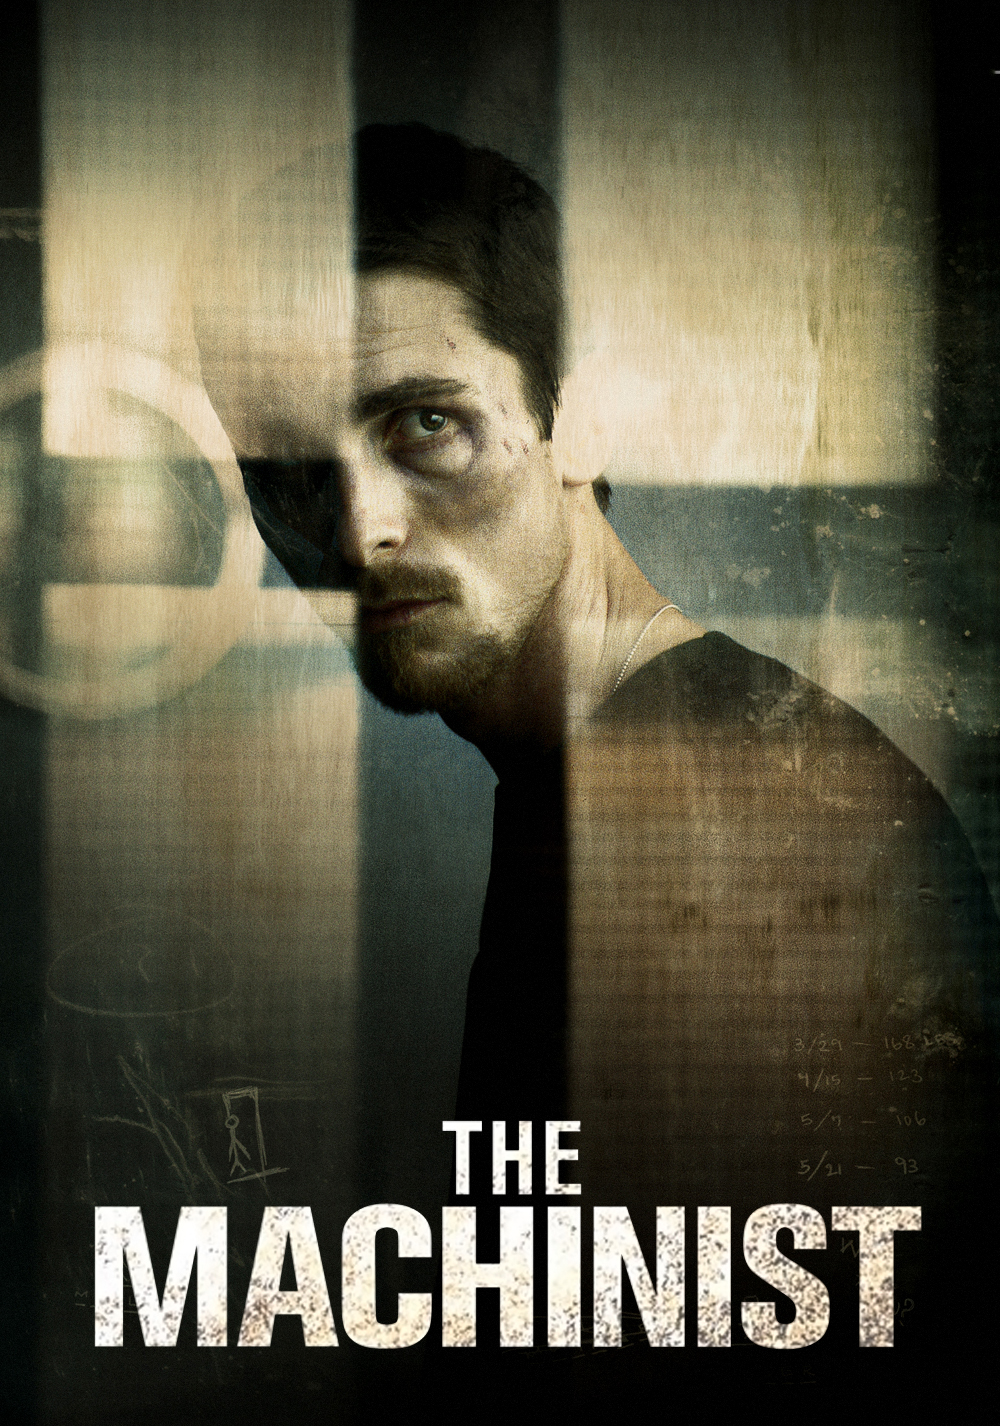 THE MACHINIST (2004) TAMIL DUBBED HD